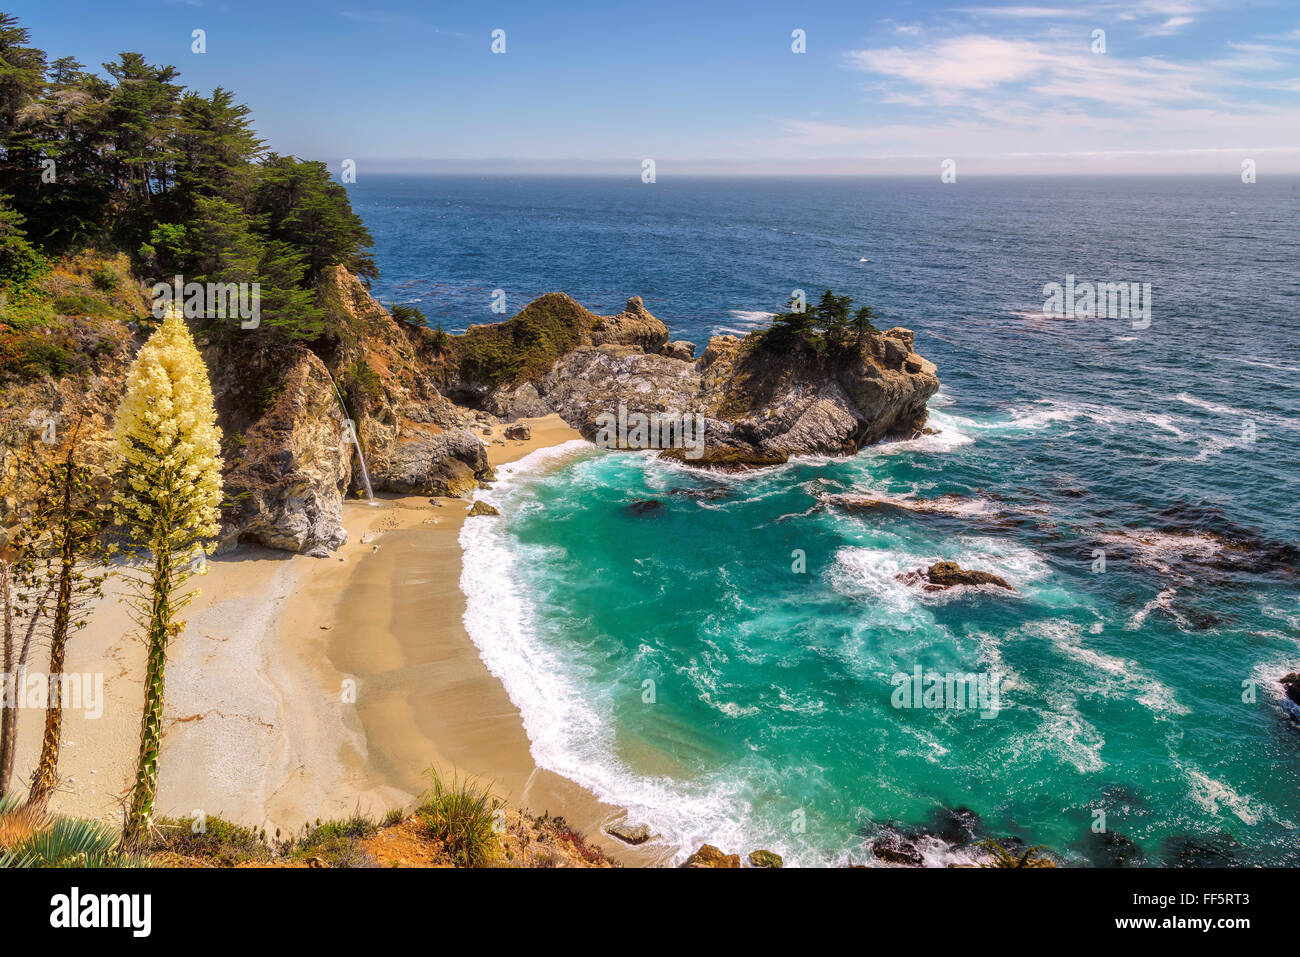 Beautiful Julia Pfeiffer beach in Big Sur. California - Stock Image